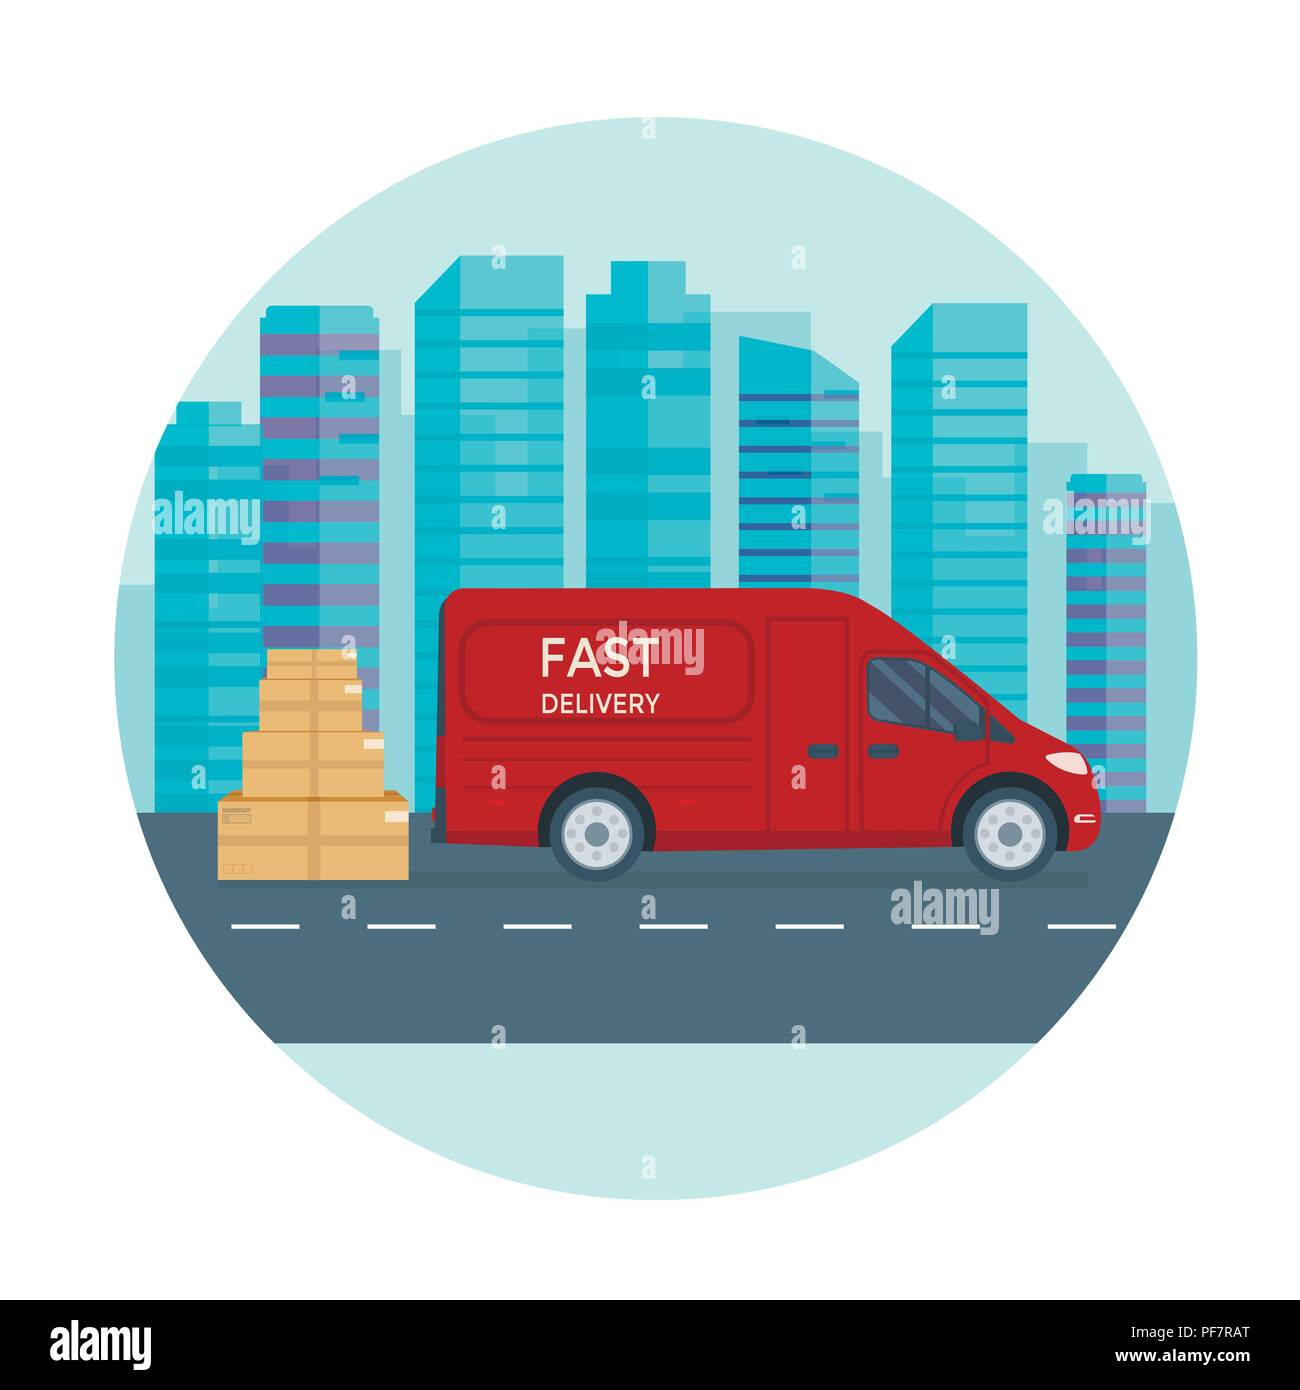 Logistics and delivery service concept: truck, lorry, van with store, shop and city background. Postal service creative banner design. Vector flat ill - Stock Image